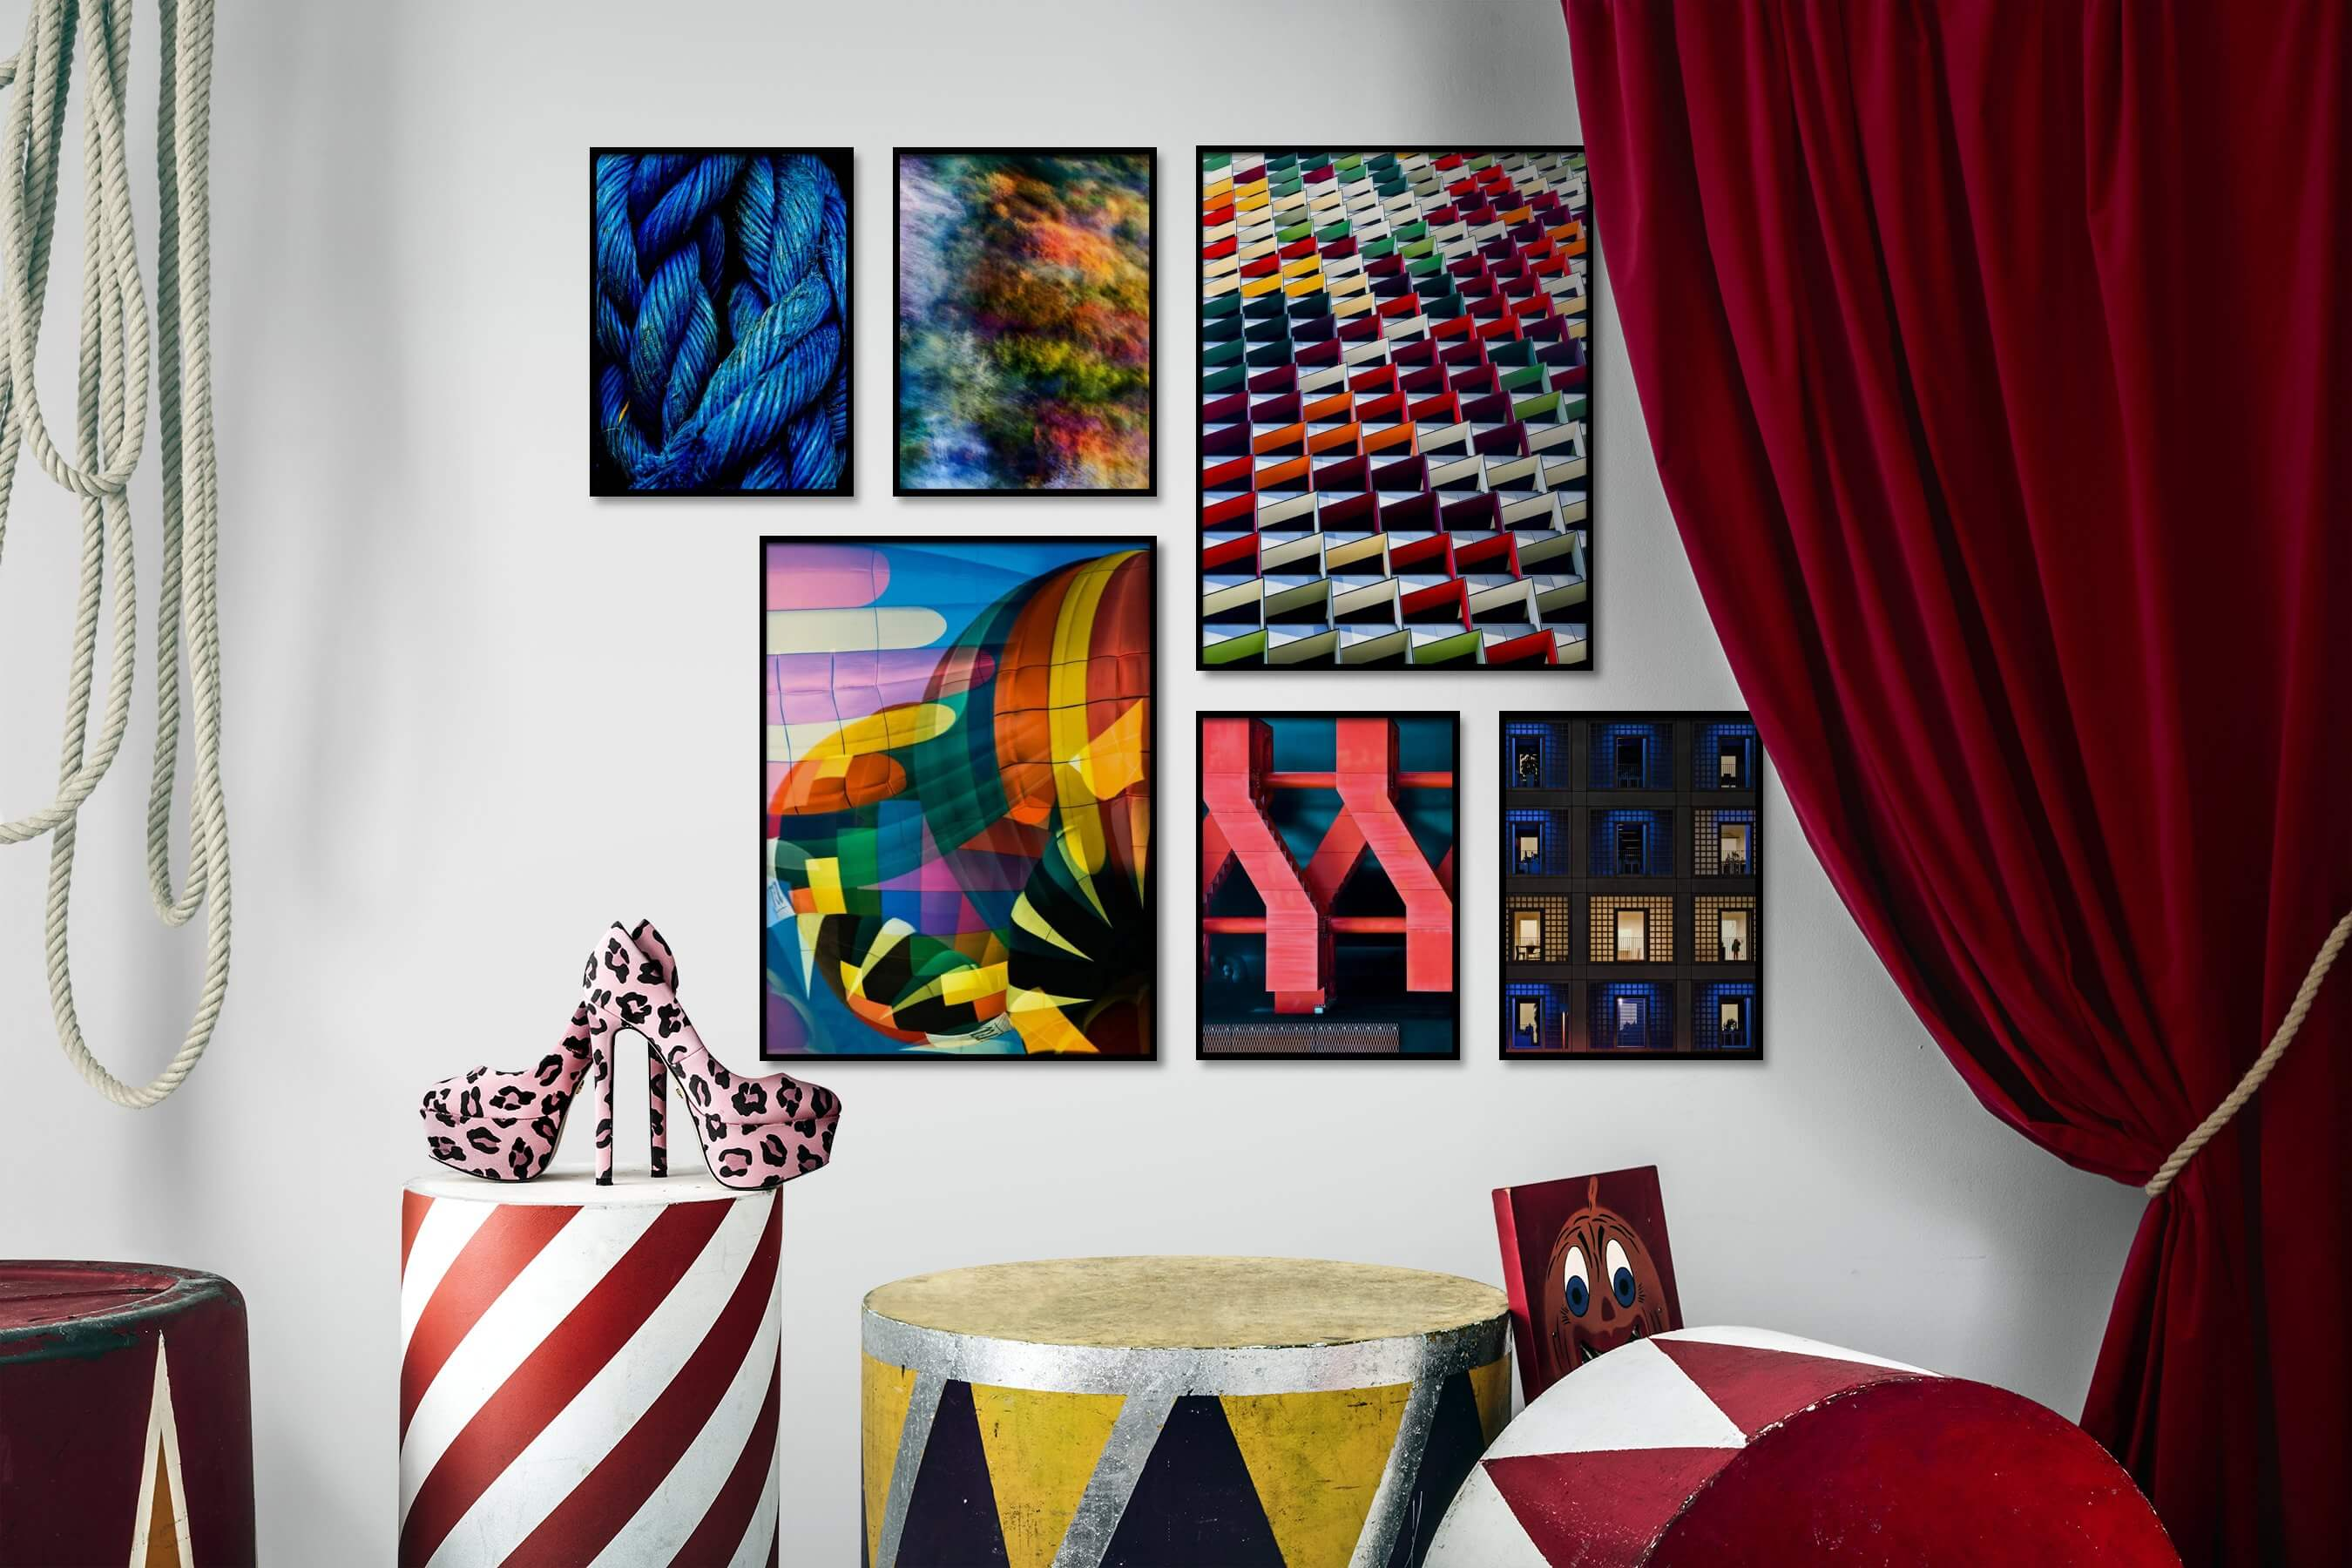 Gallery wall idea with six framed pictures arranged on a wall depicting Colorful, For the Maximalist, Nature, and City Life